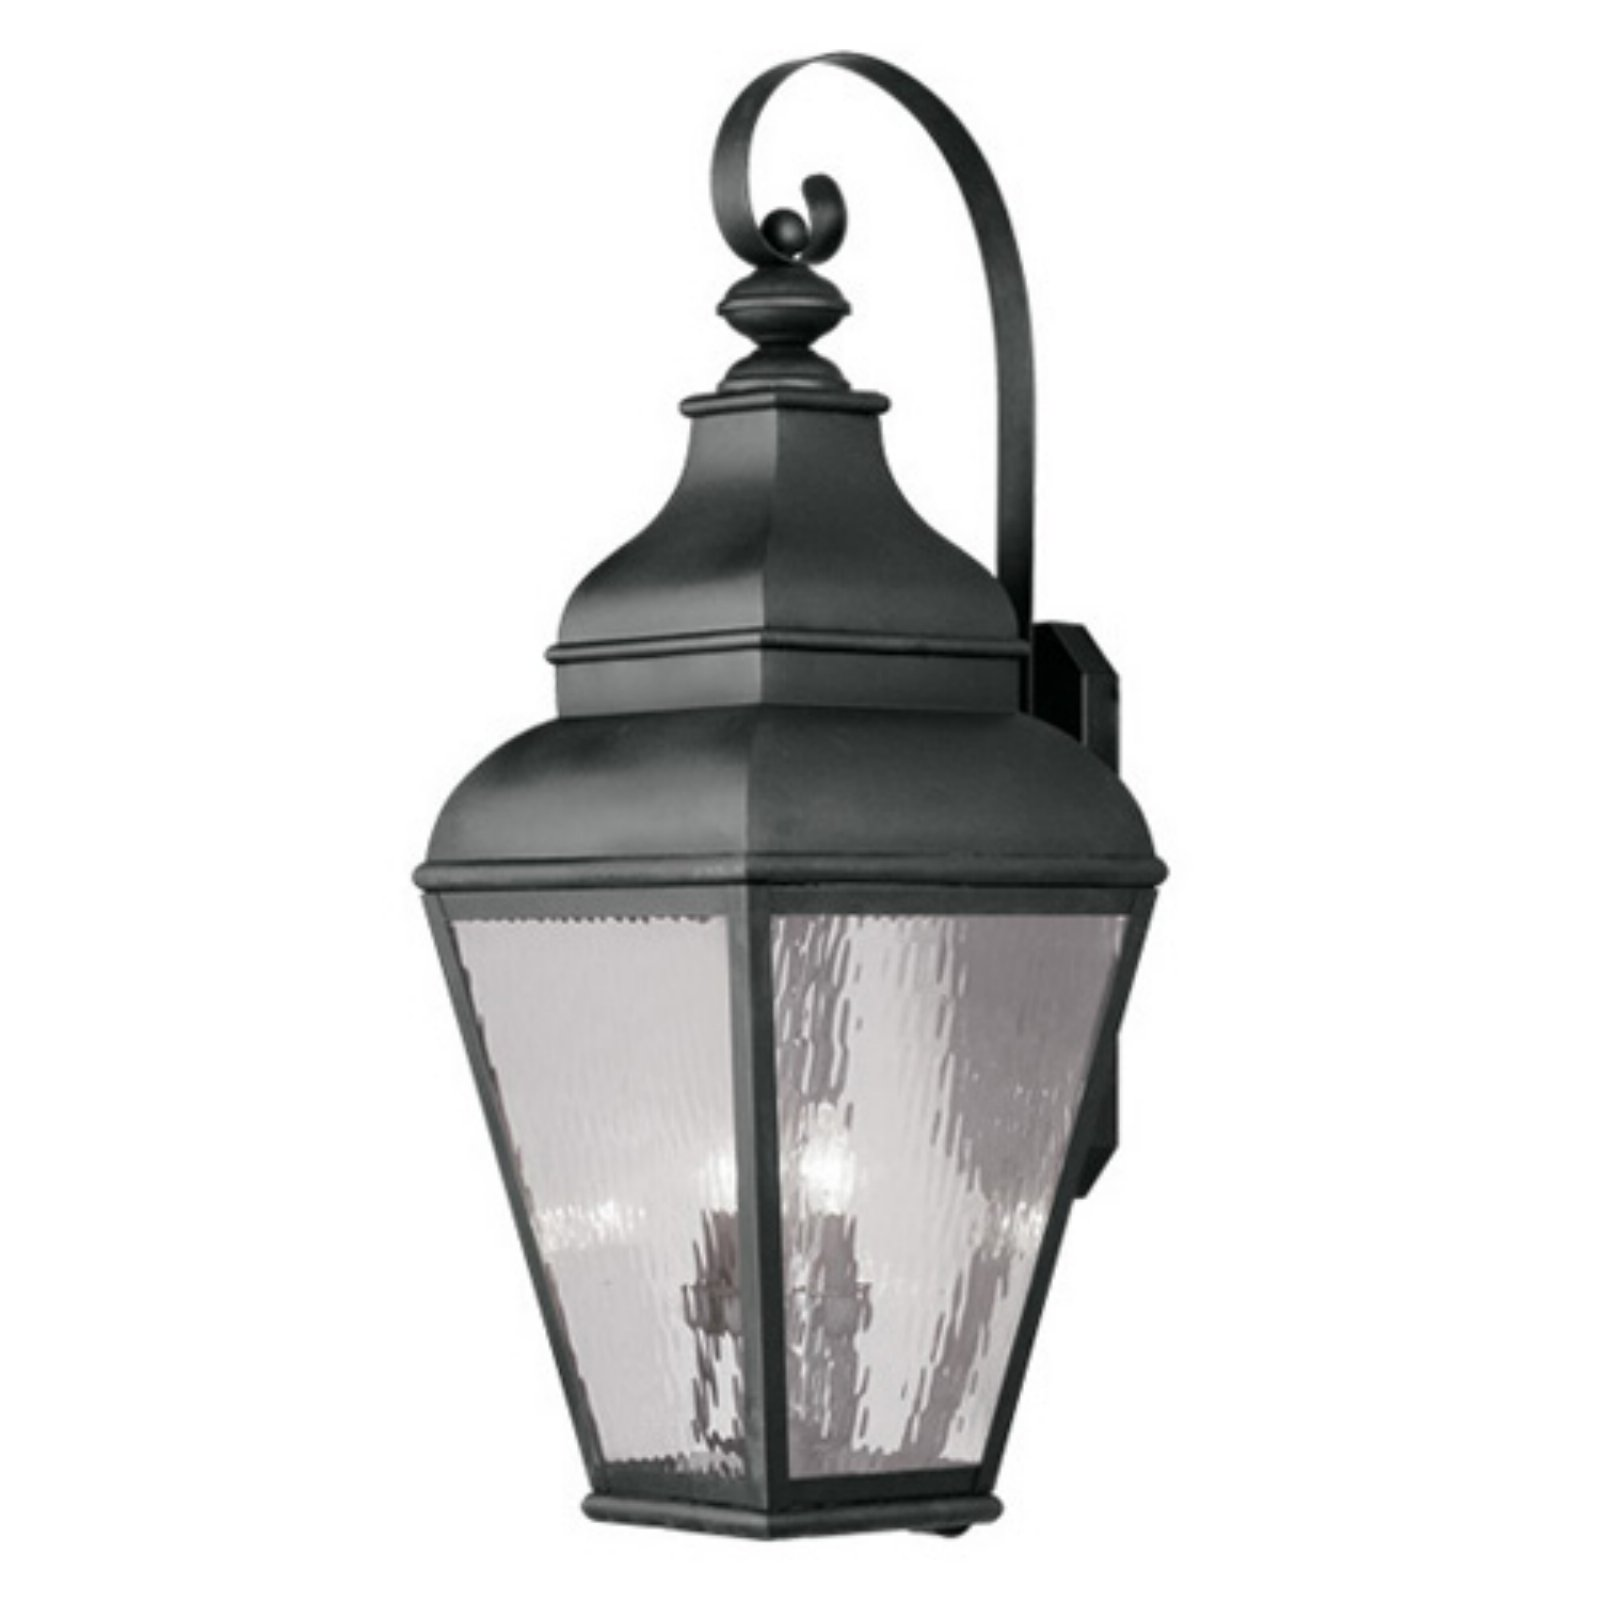 Livex Exeter 2607-04 Outdoor Wall Lantern - Black - 14W in.